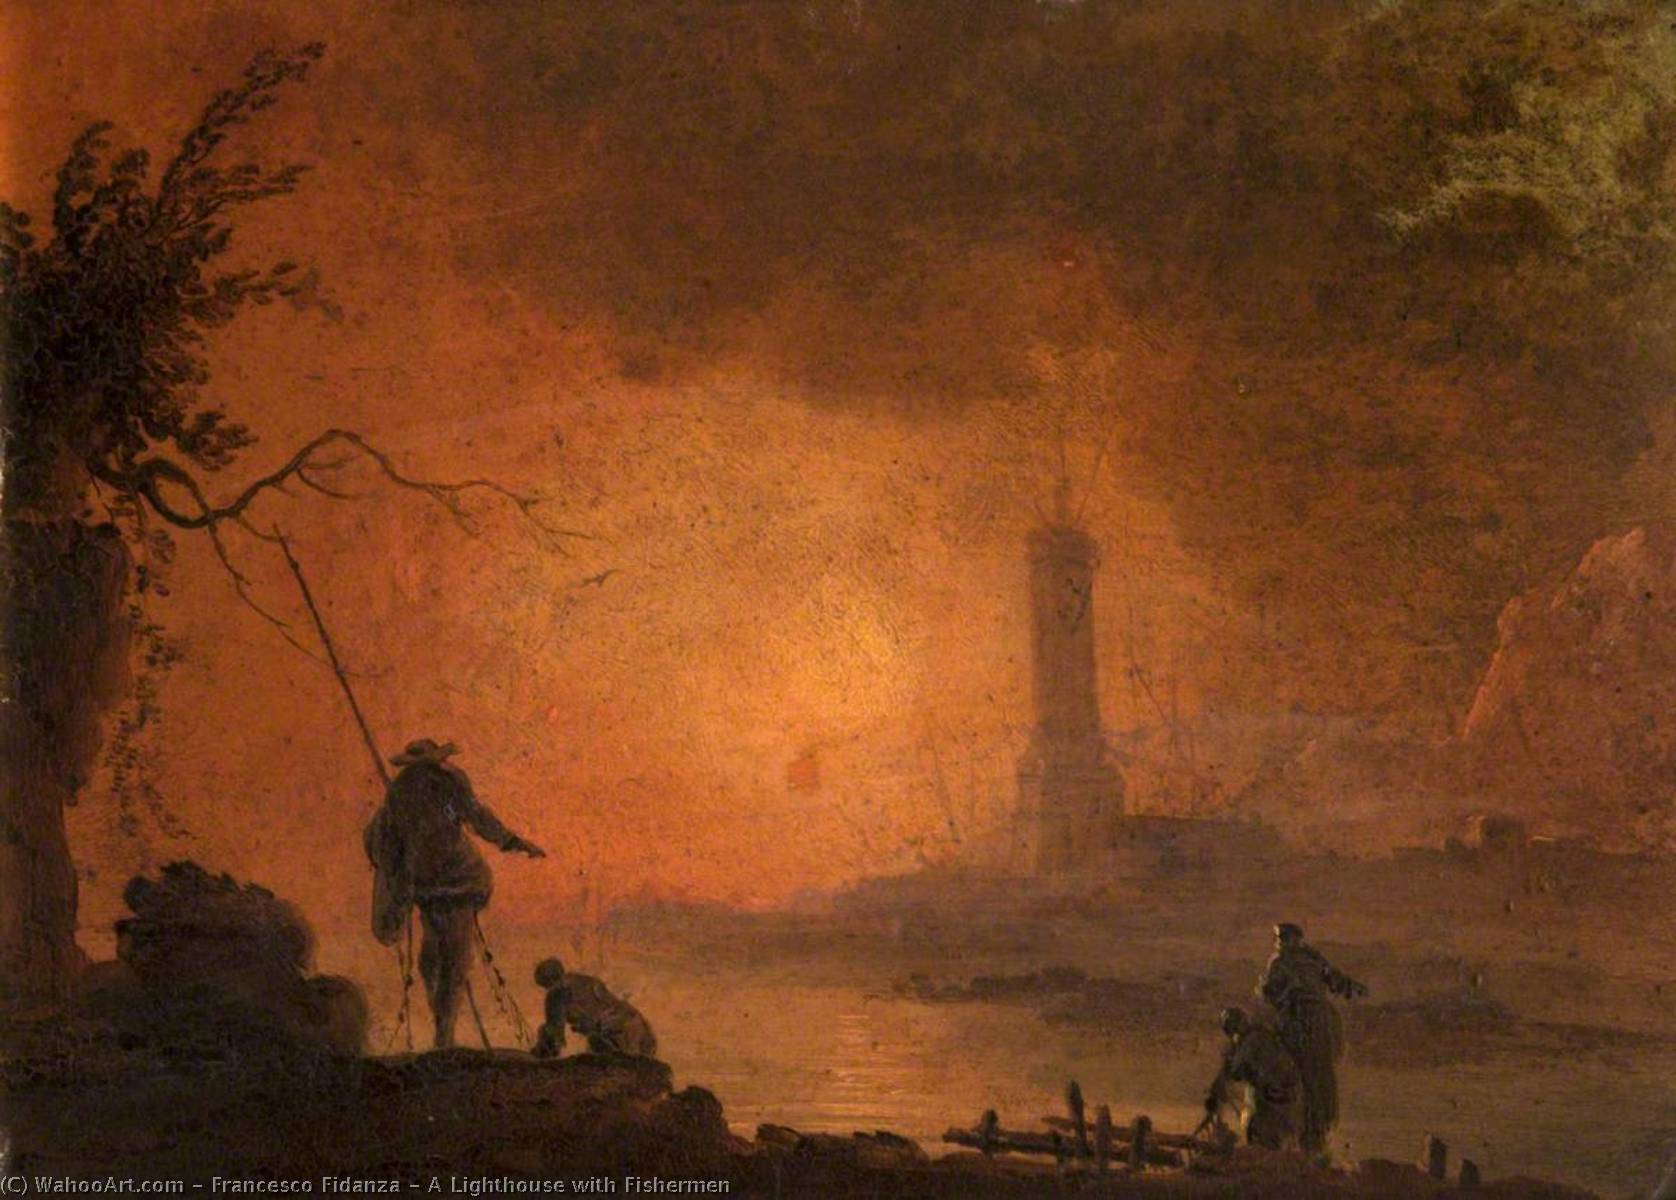 A Lighthouse with Fishermen by Francesco Fidanza |  | ArtsDot.com